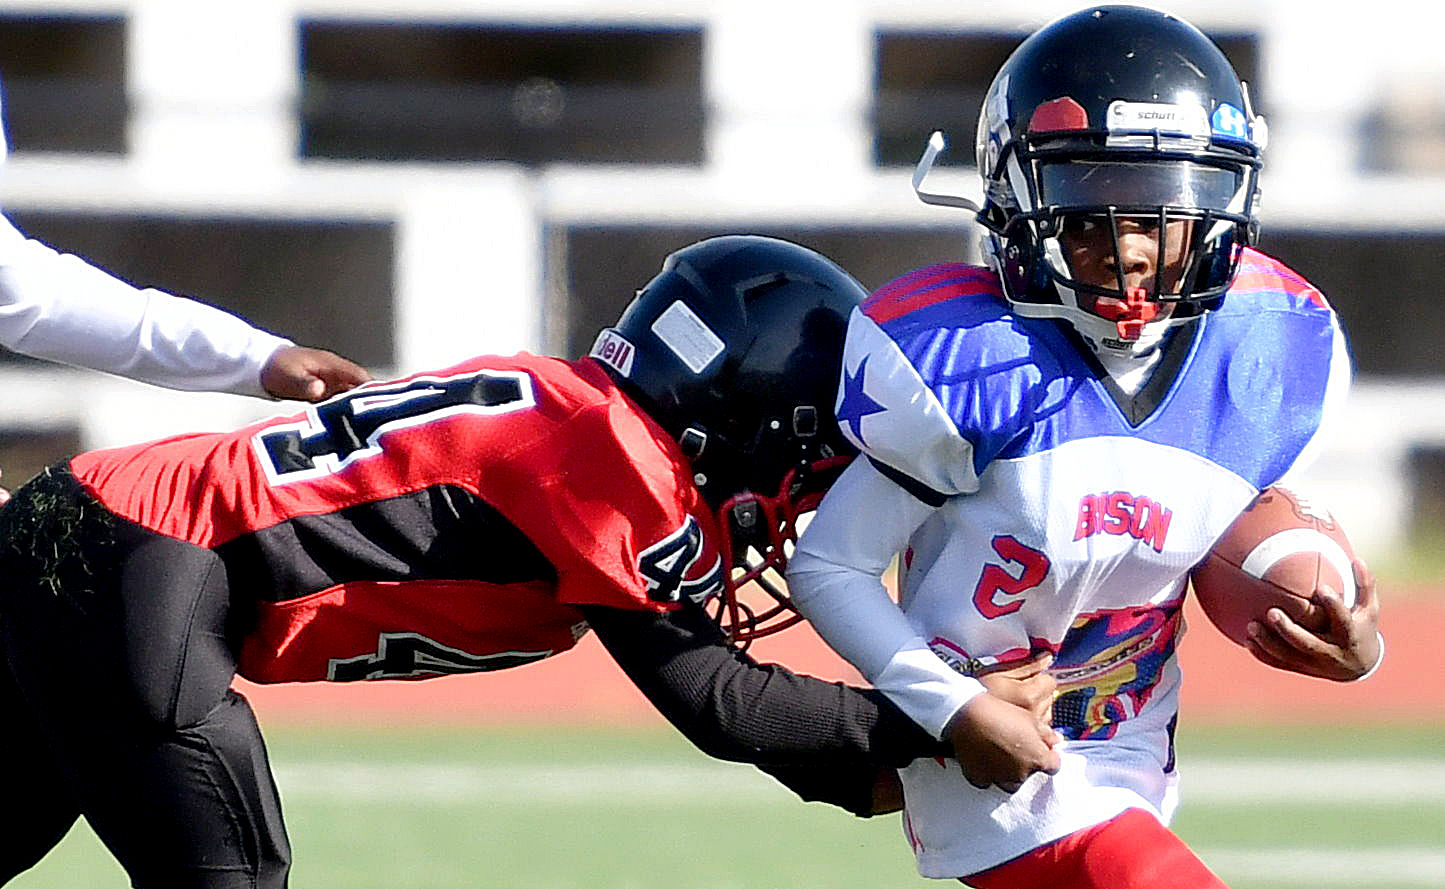 A Rita Bright player is tackled by a Bald Eagle defender during a DPR Youth Tackle Football League 10U game at Roosevelt High School Stadium in northwest D.C. on Saturday, Oct. 29. Bald Eagle defeated Rita Bright 25-21. /Photo by John E. De Freitas